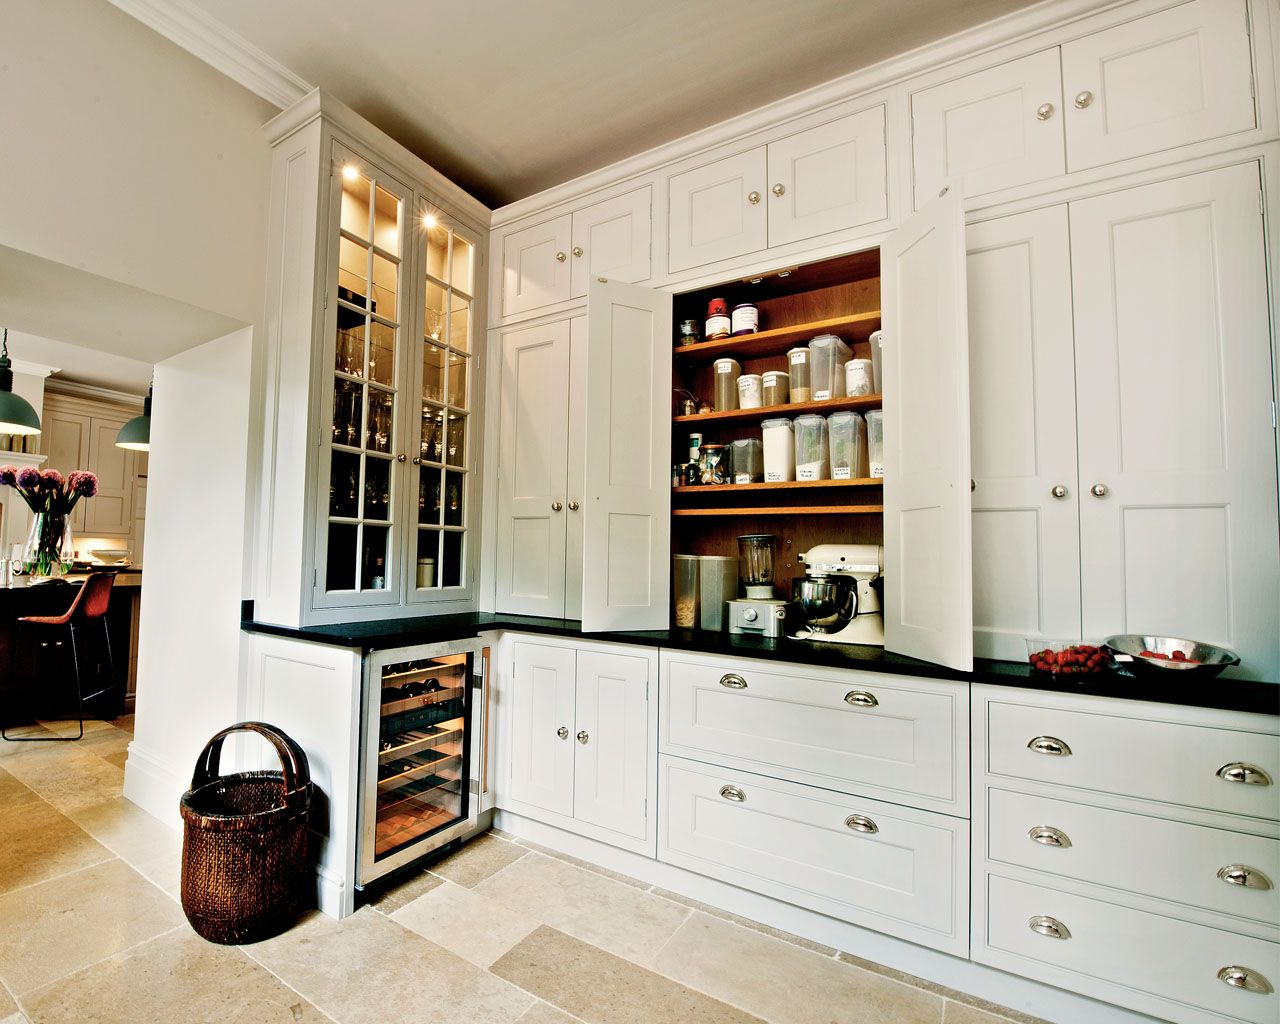 Kitchens by Thomas Ford & Sons | Furniture | Pinterest